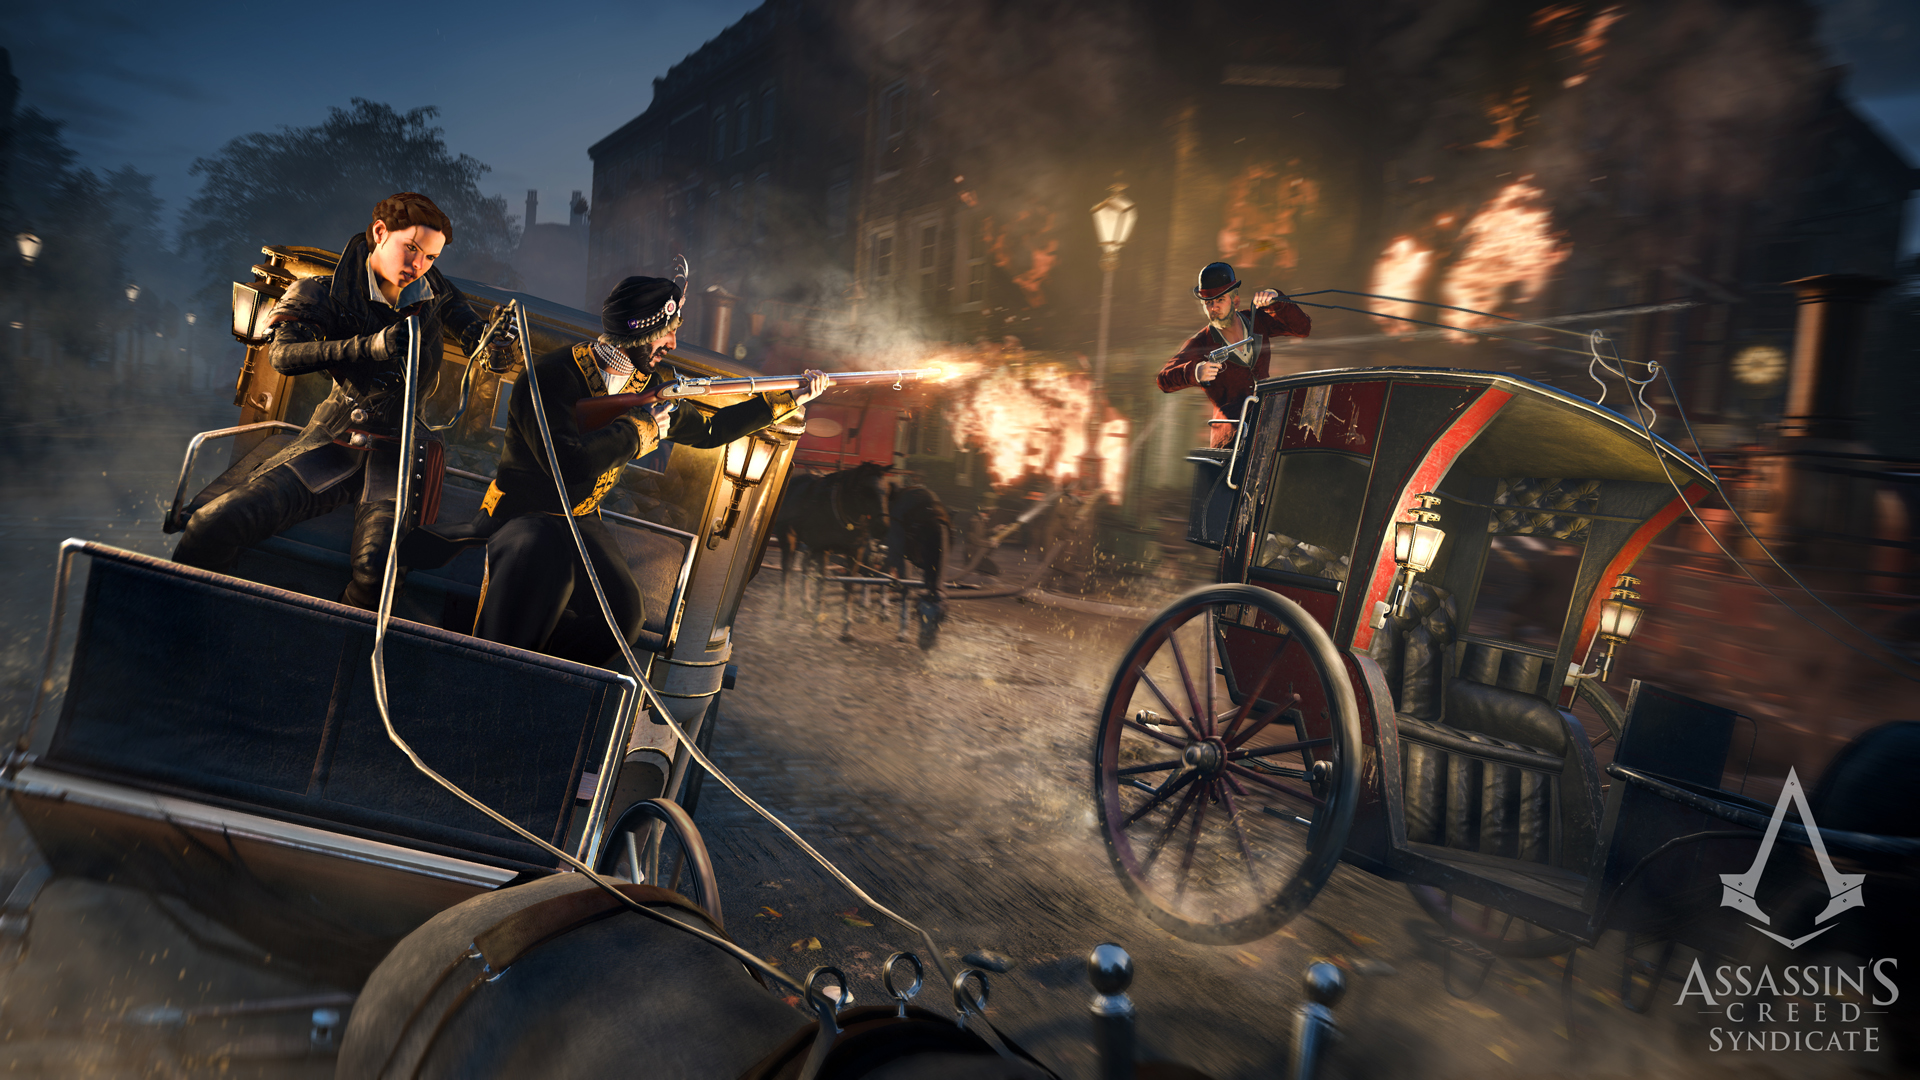 Assassin's Creed Syndicate L' Ultimo Maharaja Carriage Chase